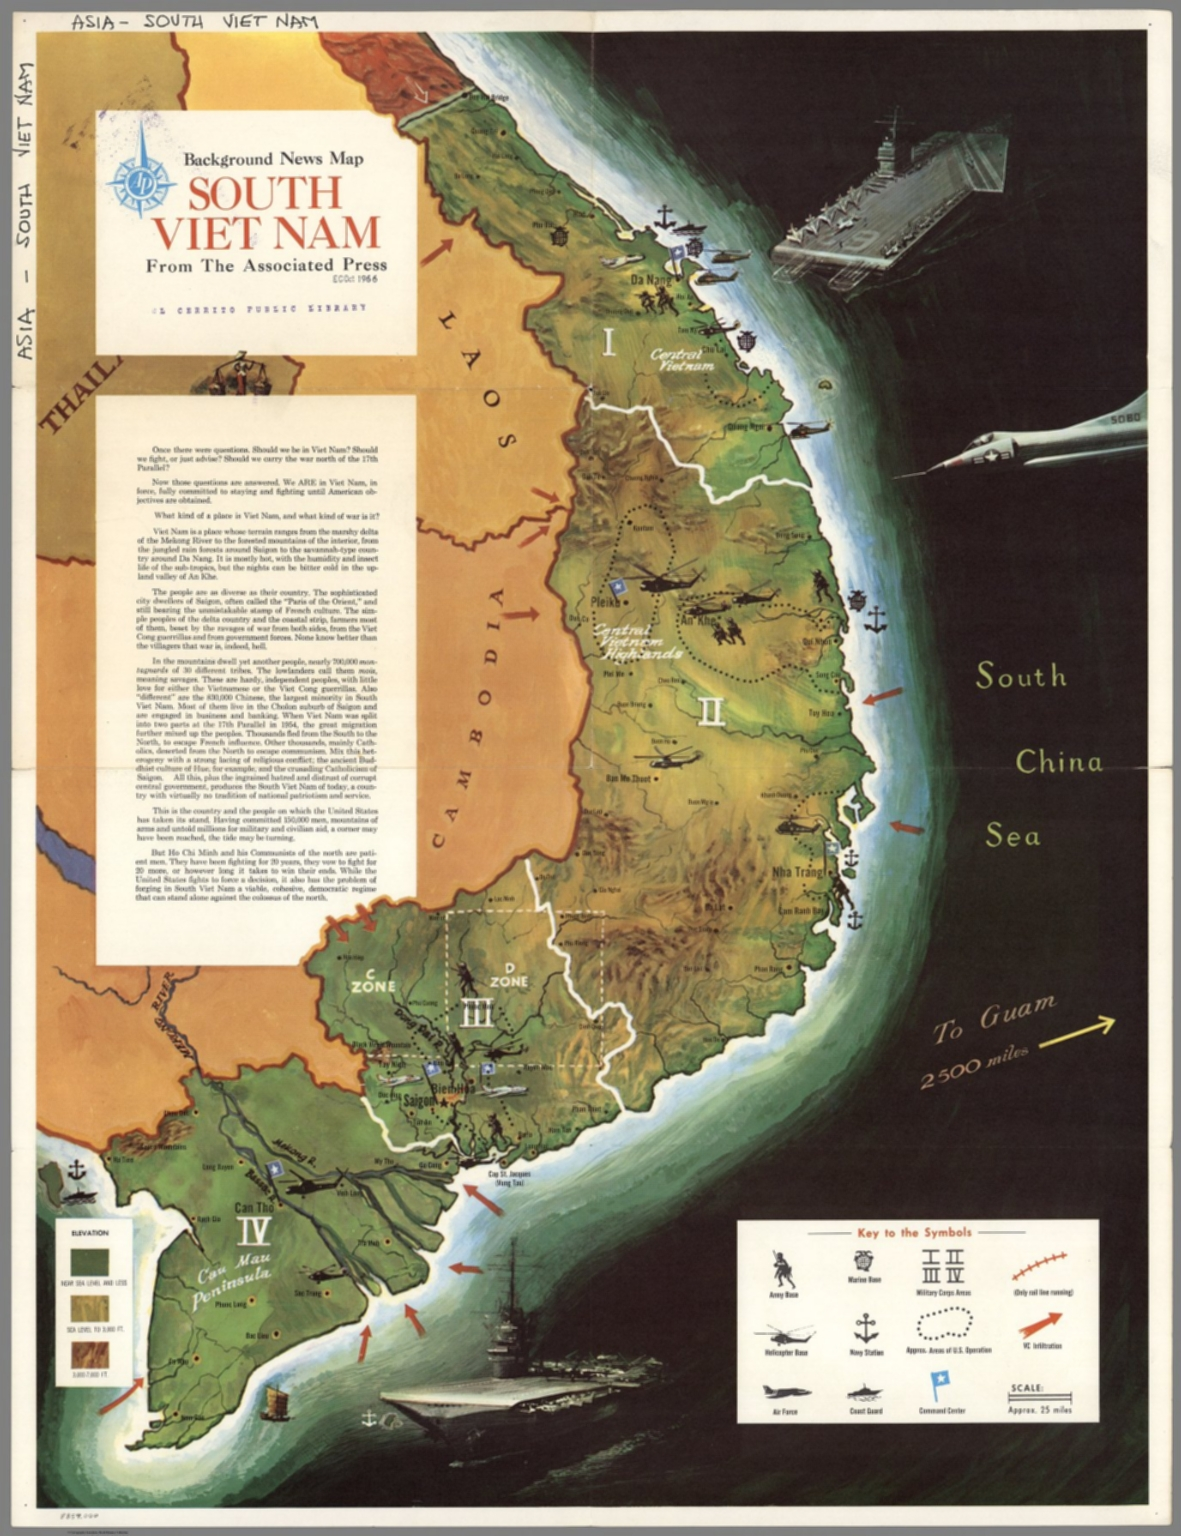 Background News Map South Vietnam From The Associated Press. - David ...